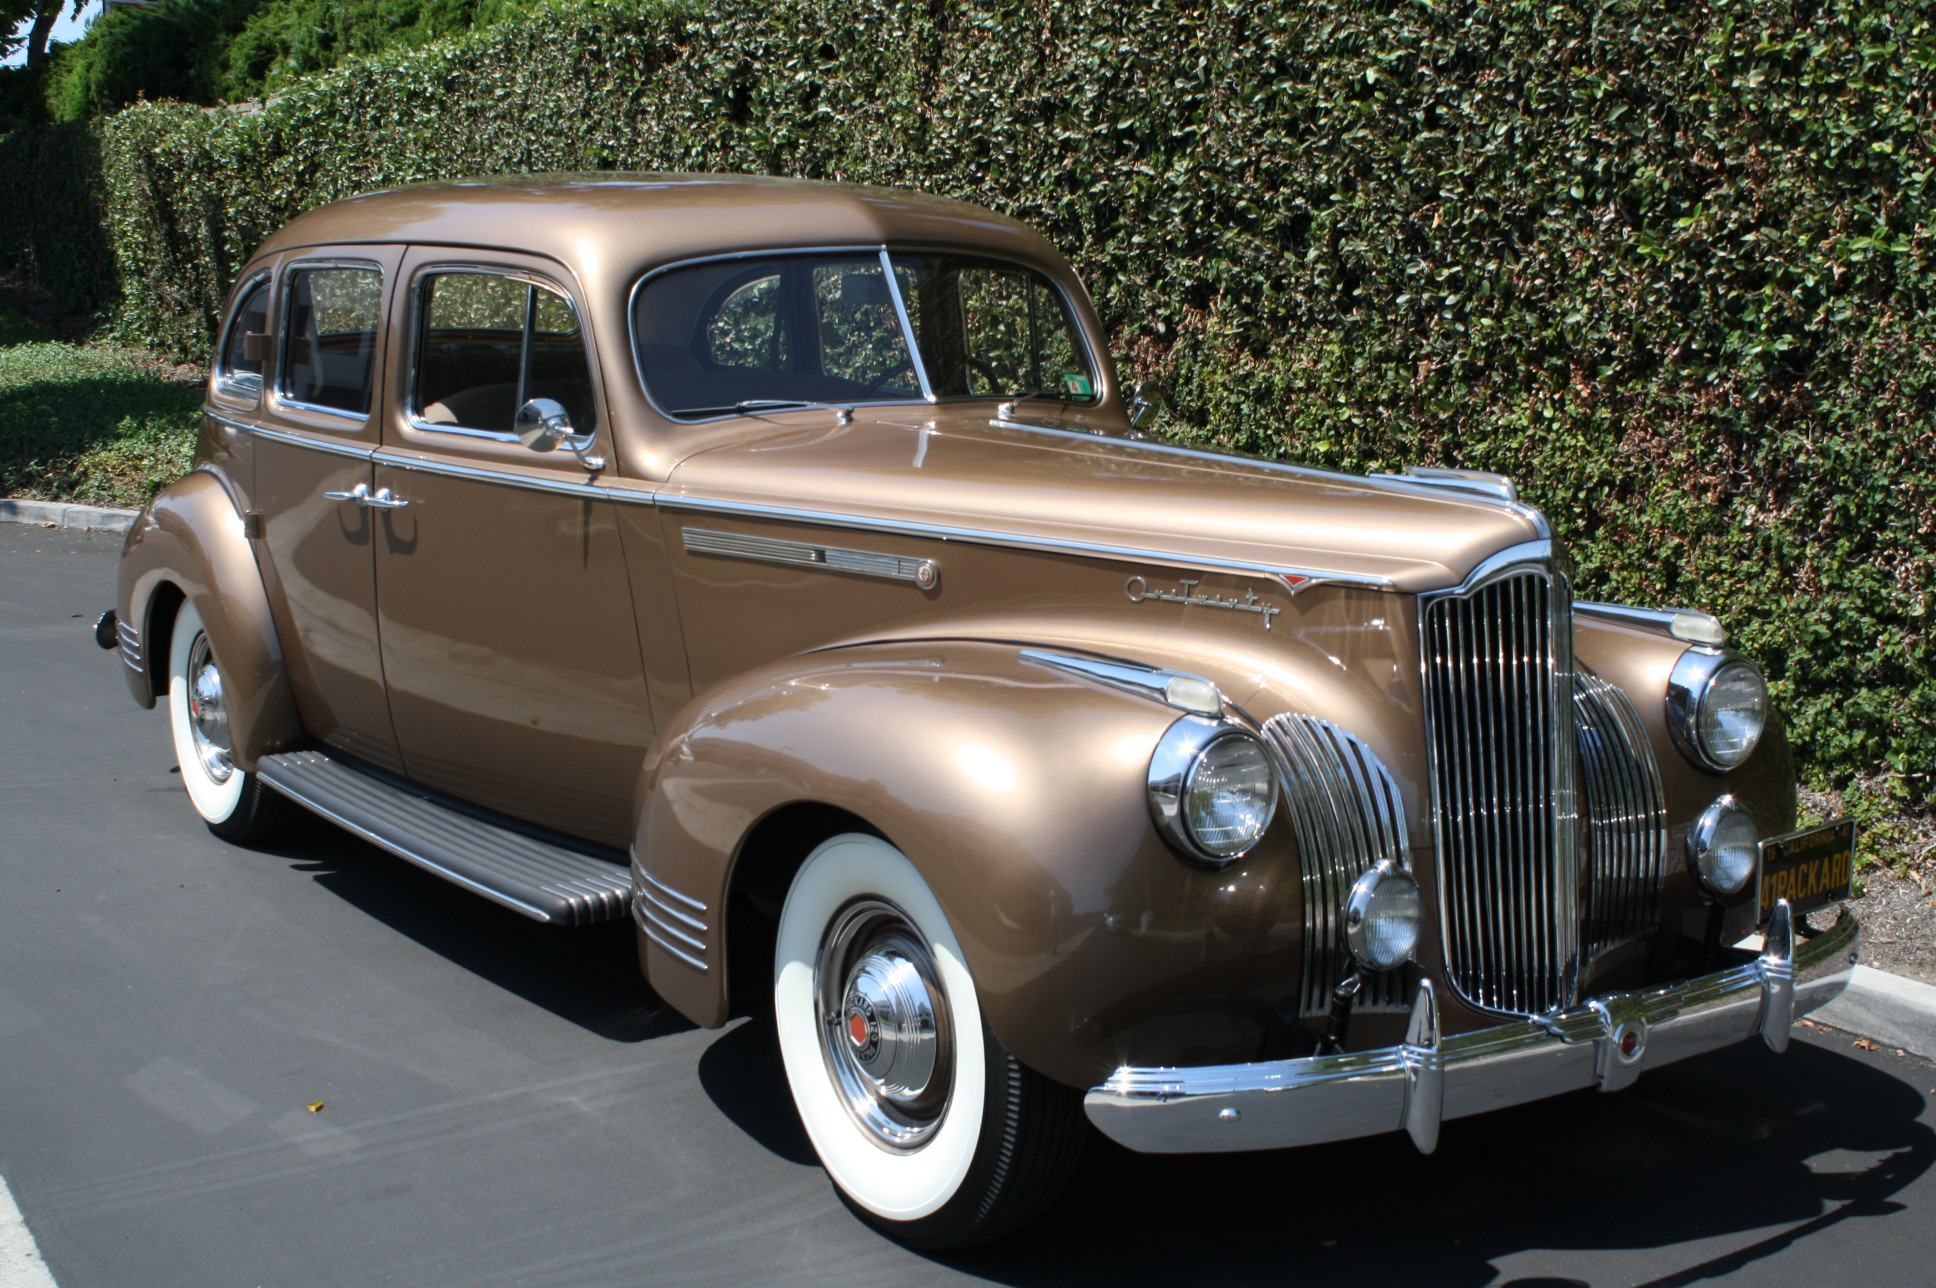 1941 Packard 120 Sedan | The Vault Classic Cars